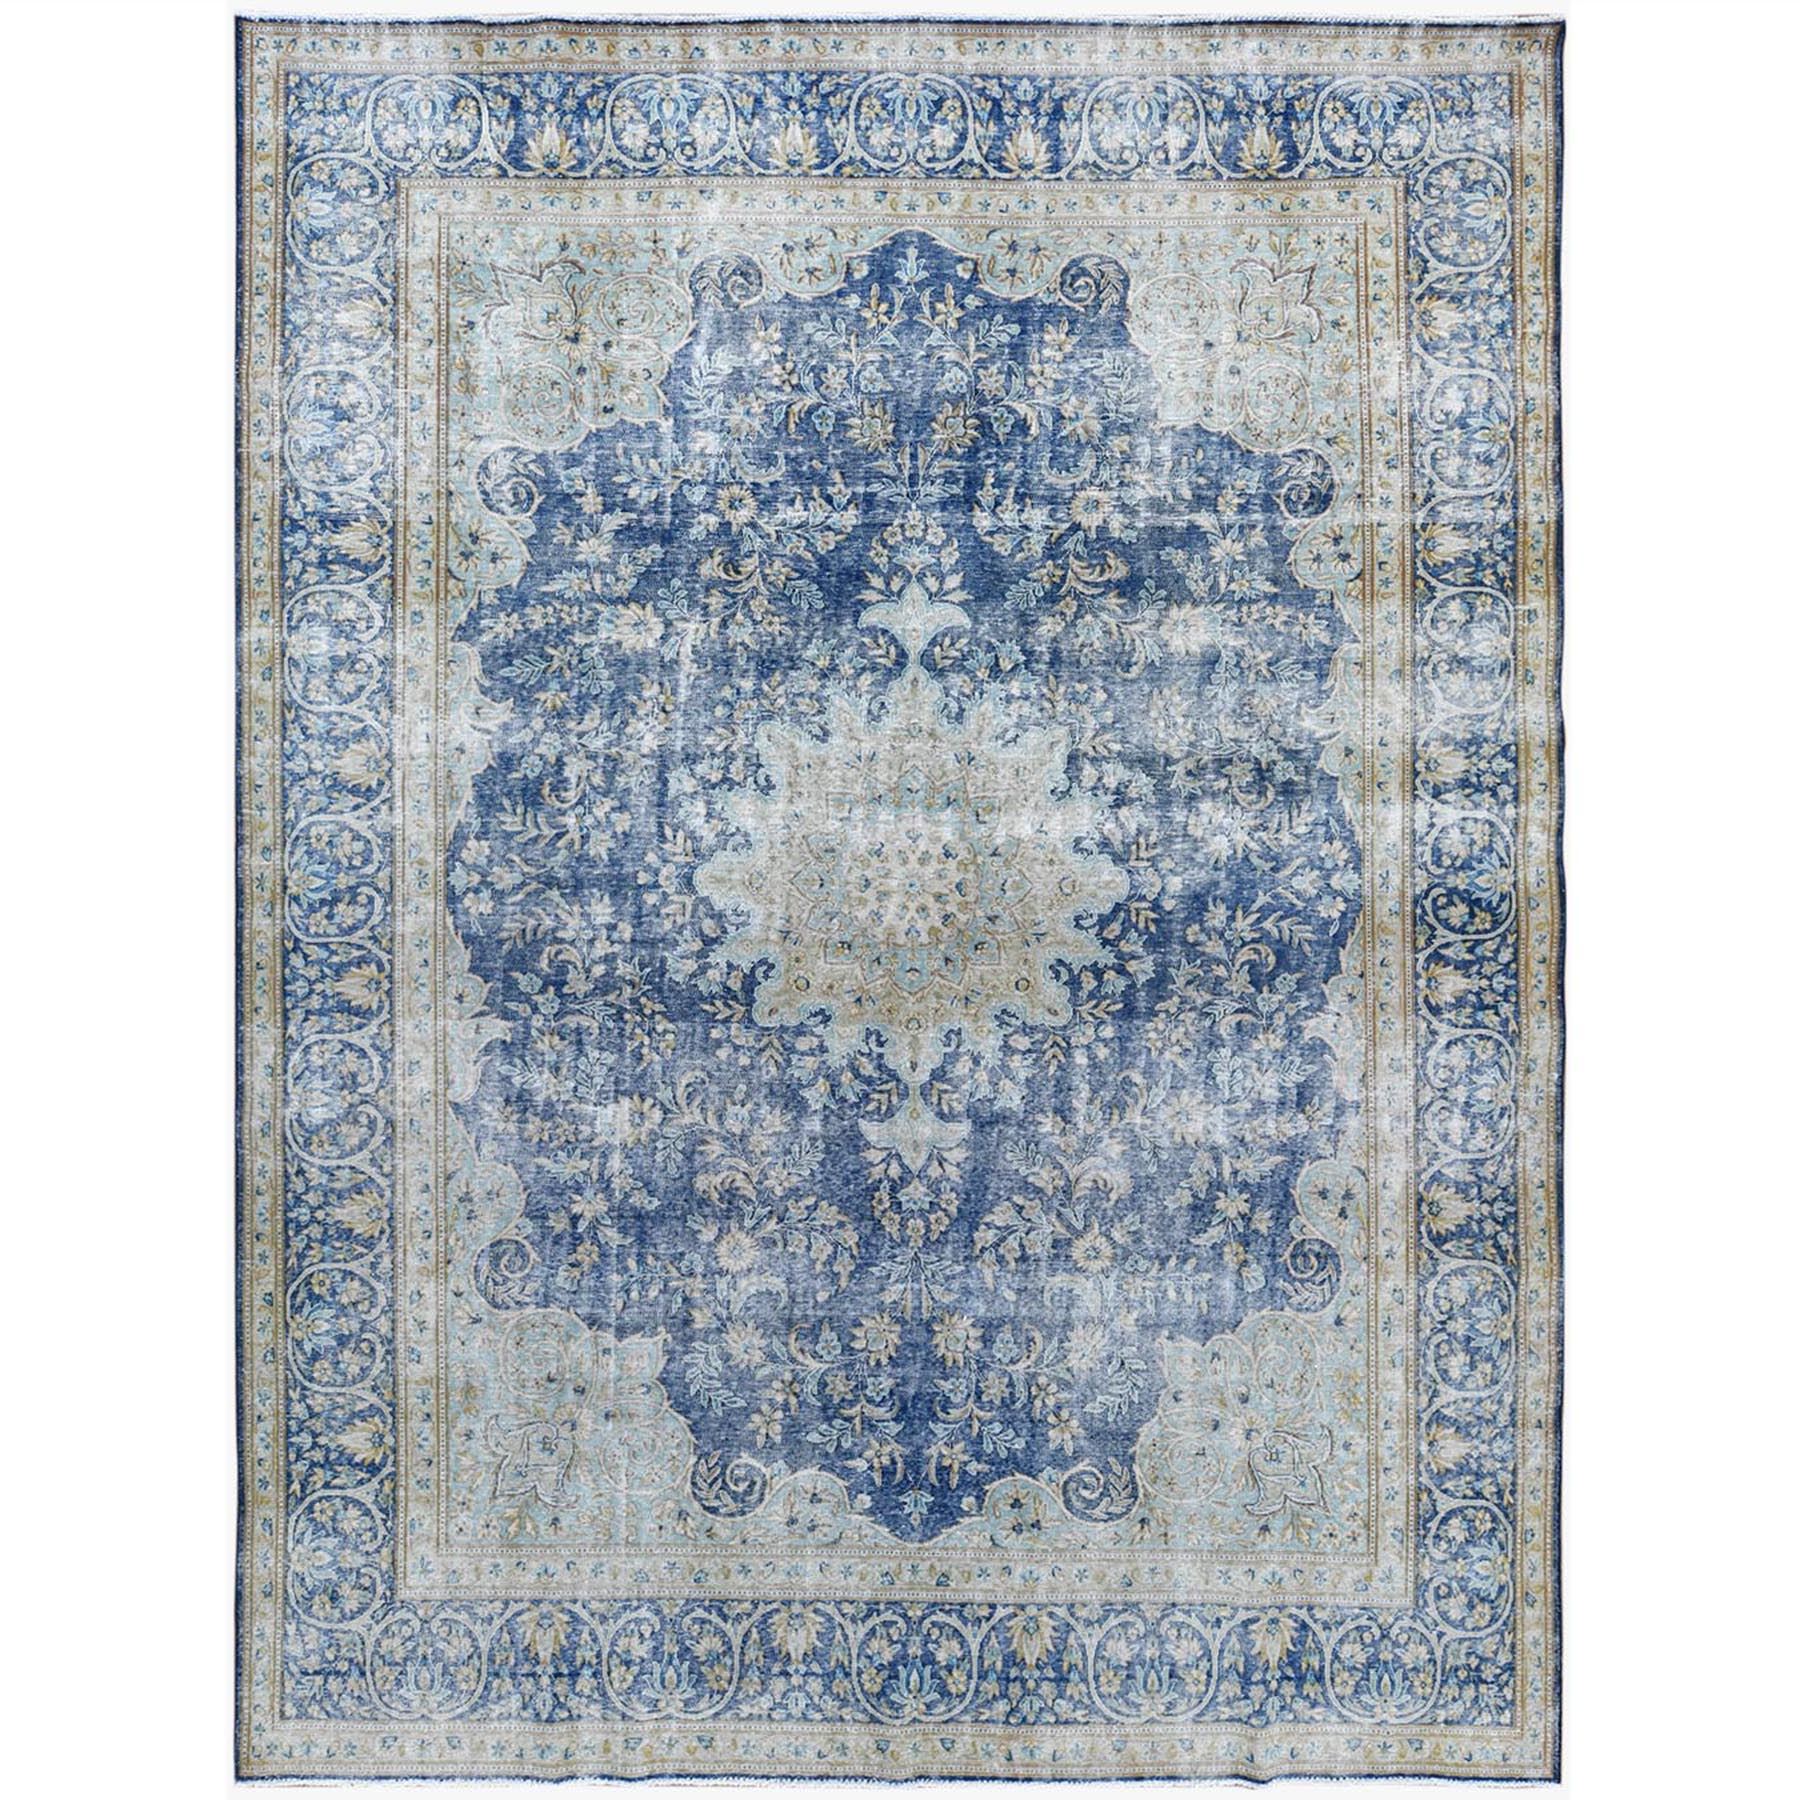 Fetneh Collection And Vintage Overdyed Collection Hand Knotted Blue Rug No: 1122822